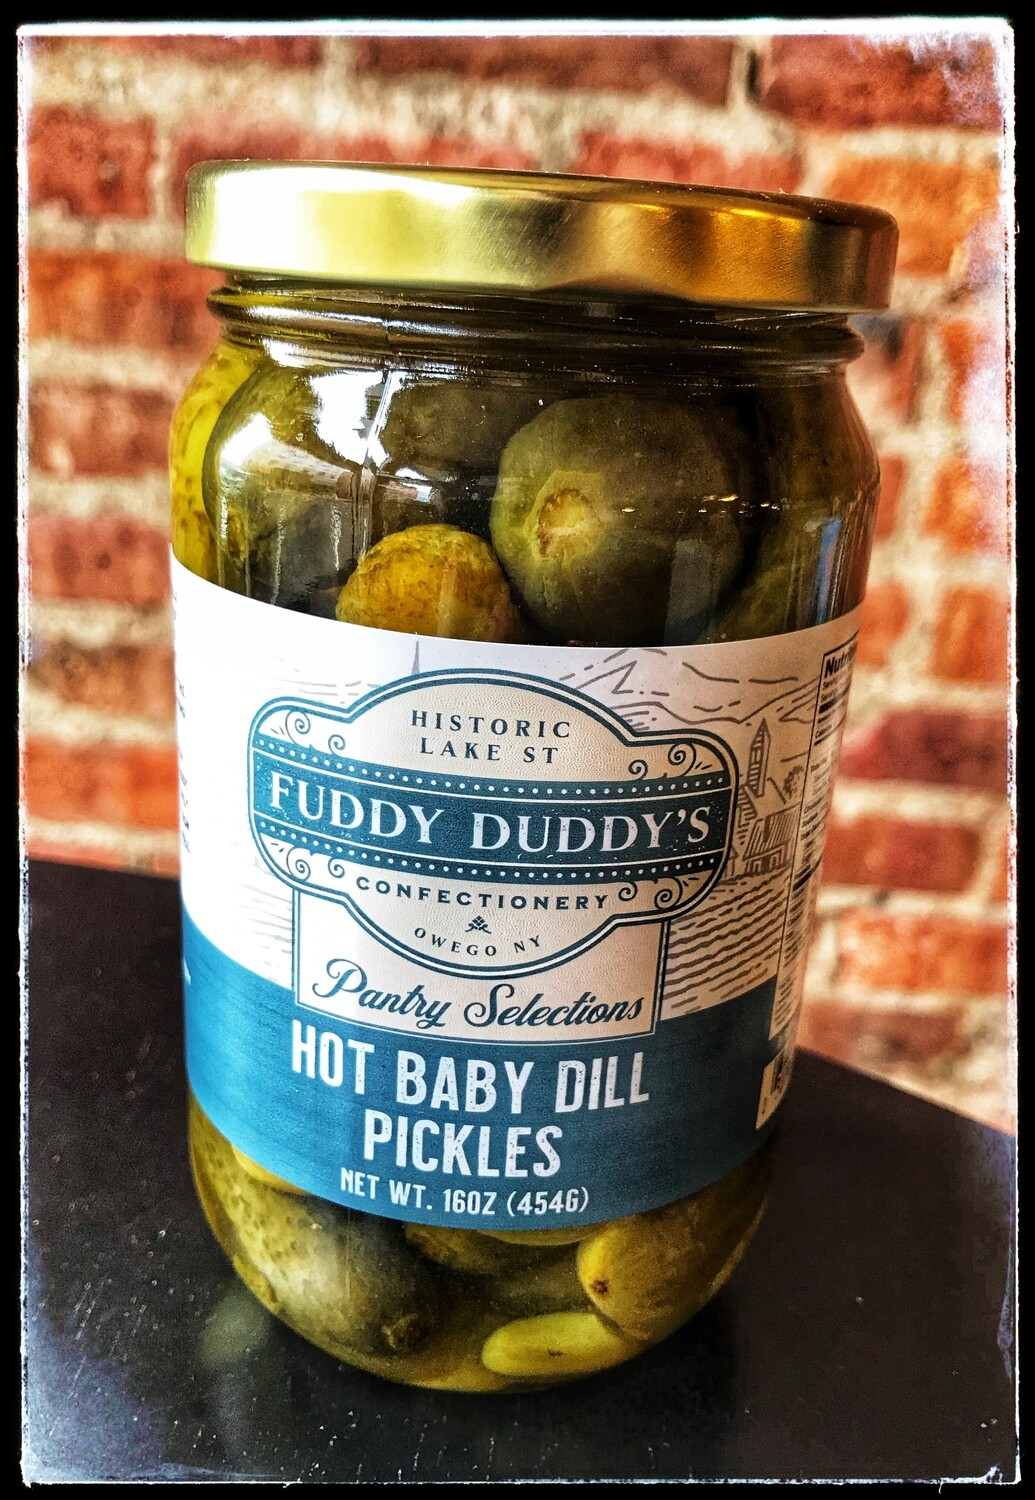 Fuddy Duddy's Hot Baby Dill Pickles